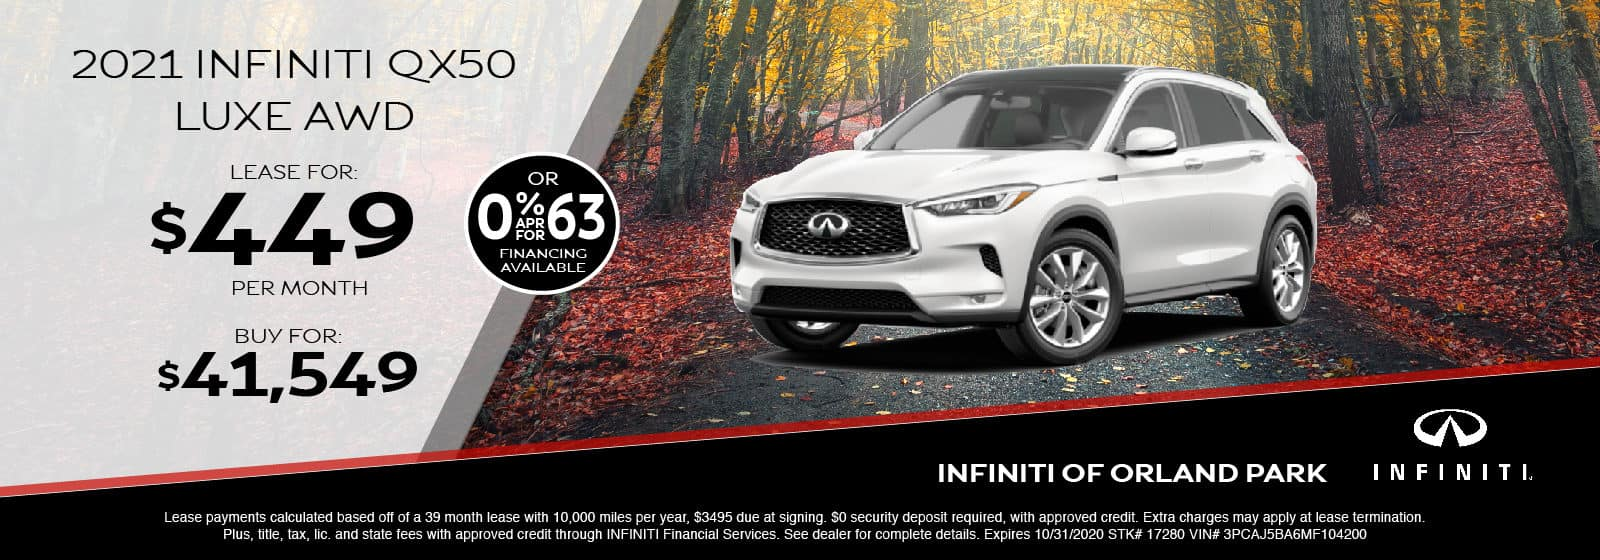 Lease a new 2021 QX50 for $449/month